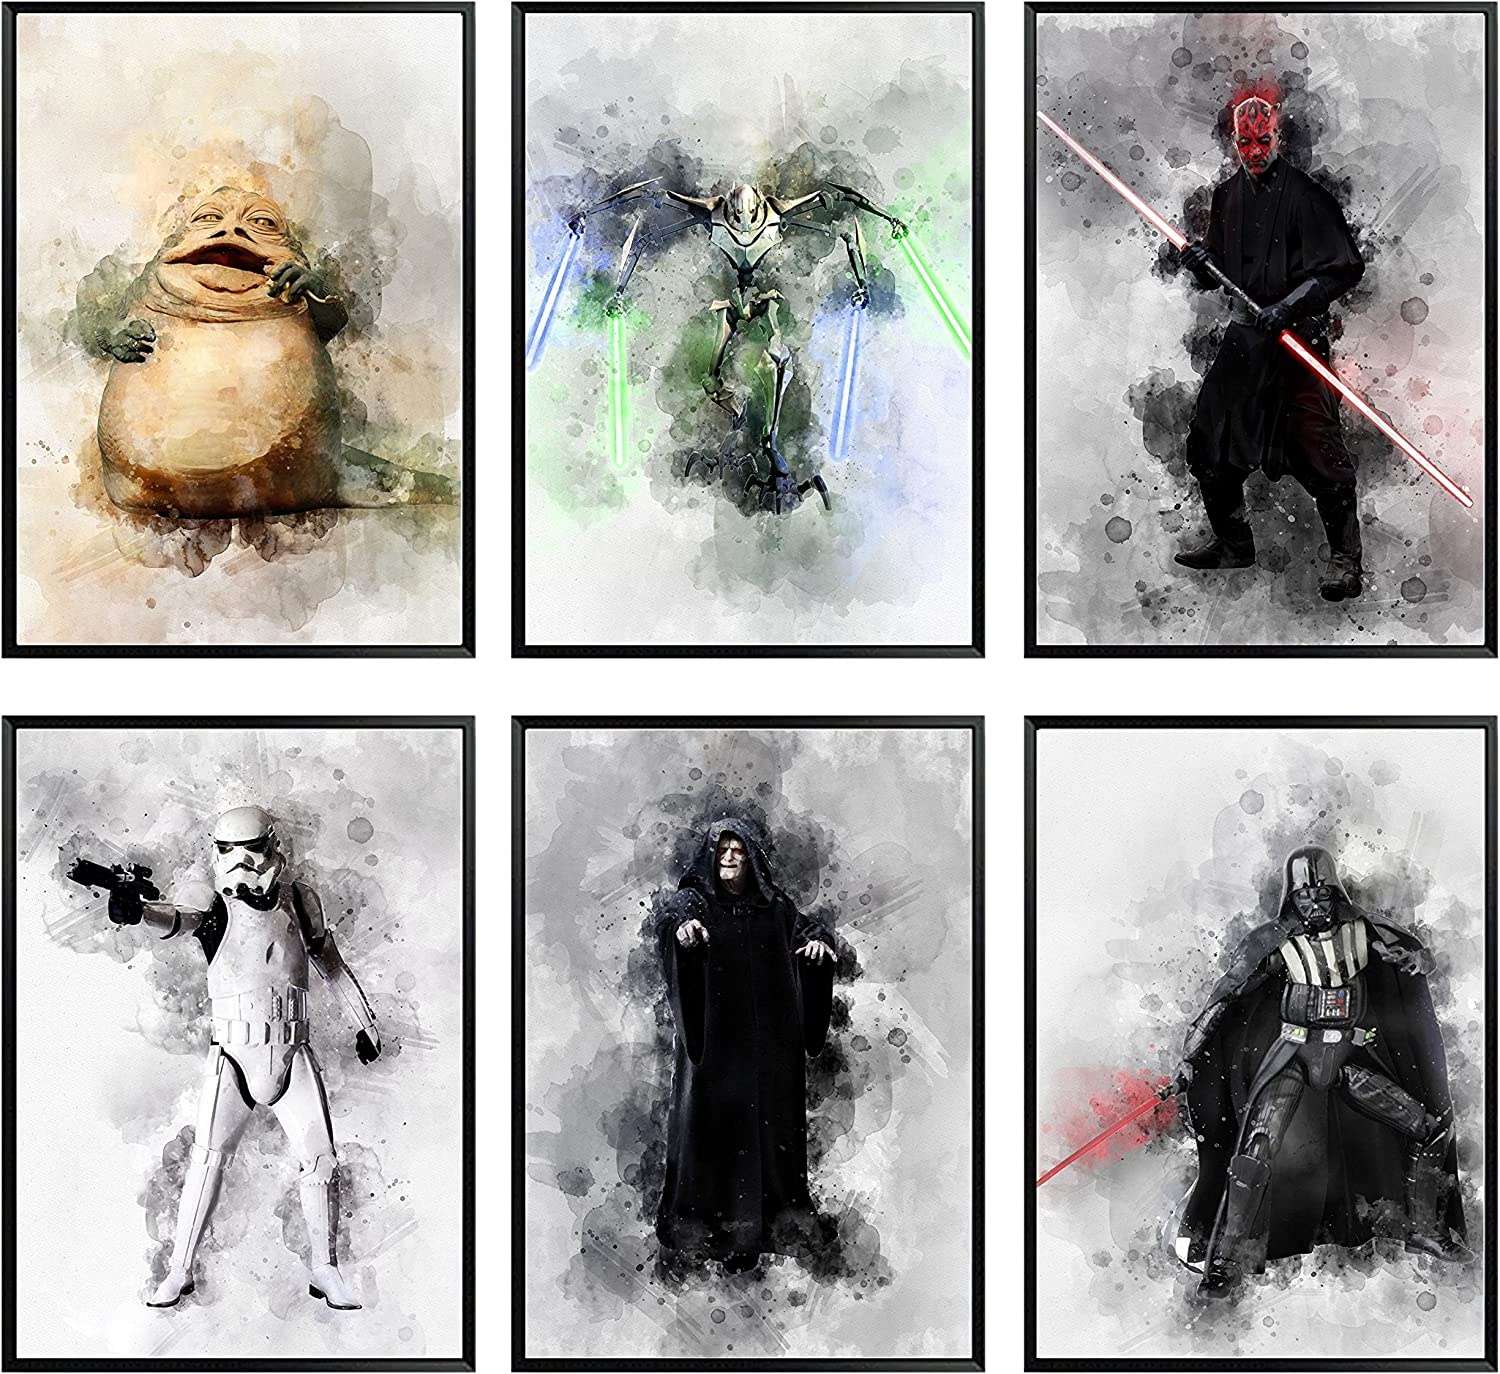 Star Wars Posters for Walls Villains – Unframed Set of 6 Characters, 8x10 Inch, Darth Vader Darth Maul Darth Siddious Storm Trooper General Grievous Jabba the Hutt Villain Pictures, Watercolor Wall Art for Boys, Teens Bedroom Living Bathroom Decor